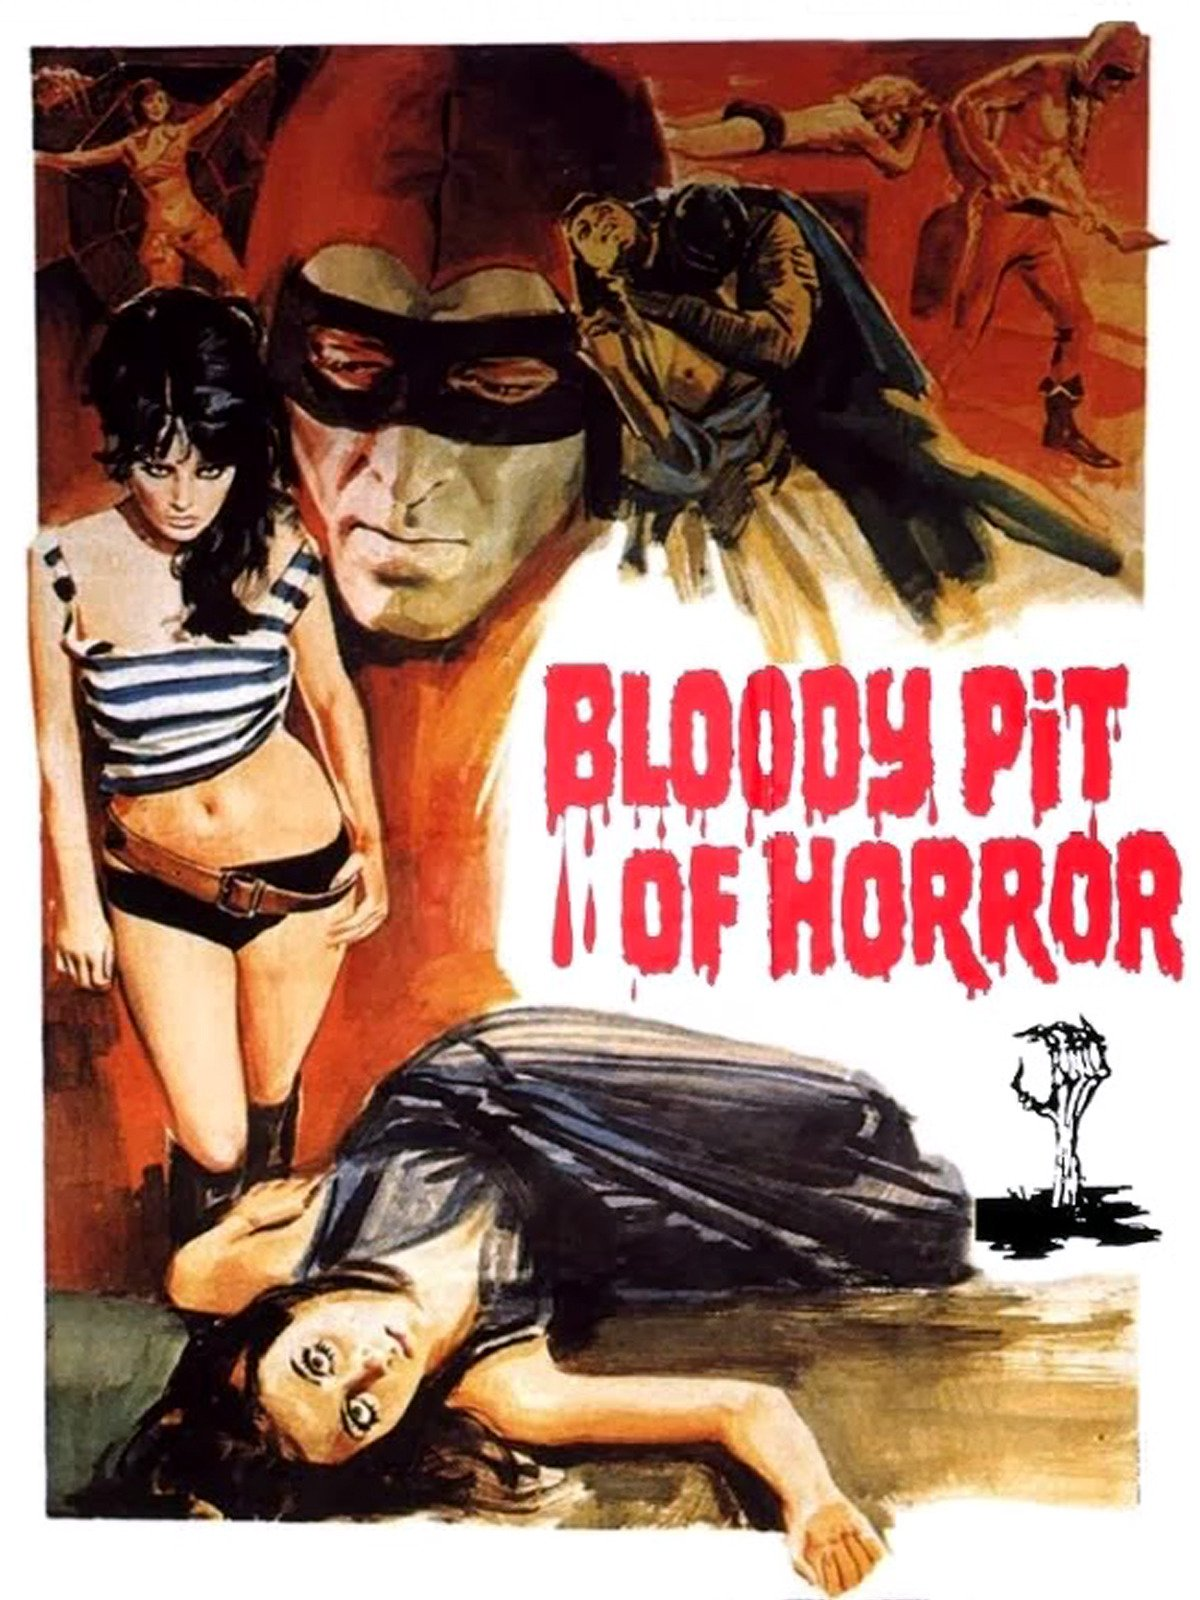 The Bloody Pit of Horror